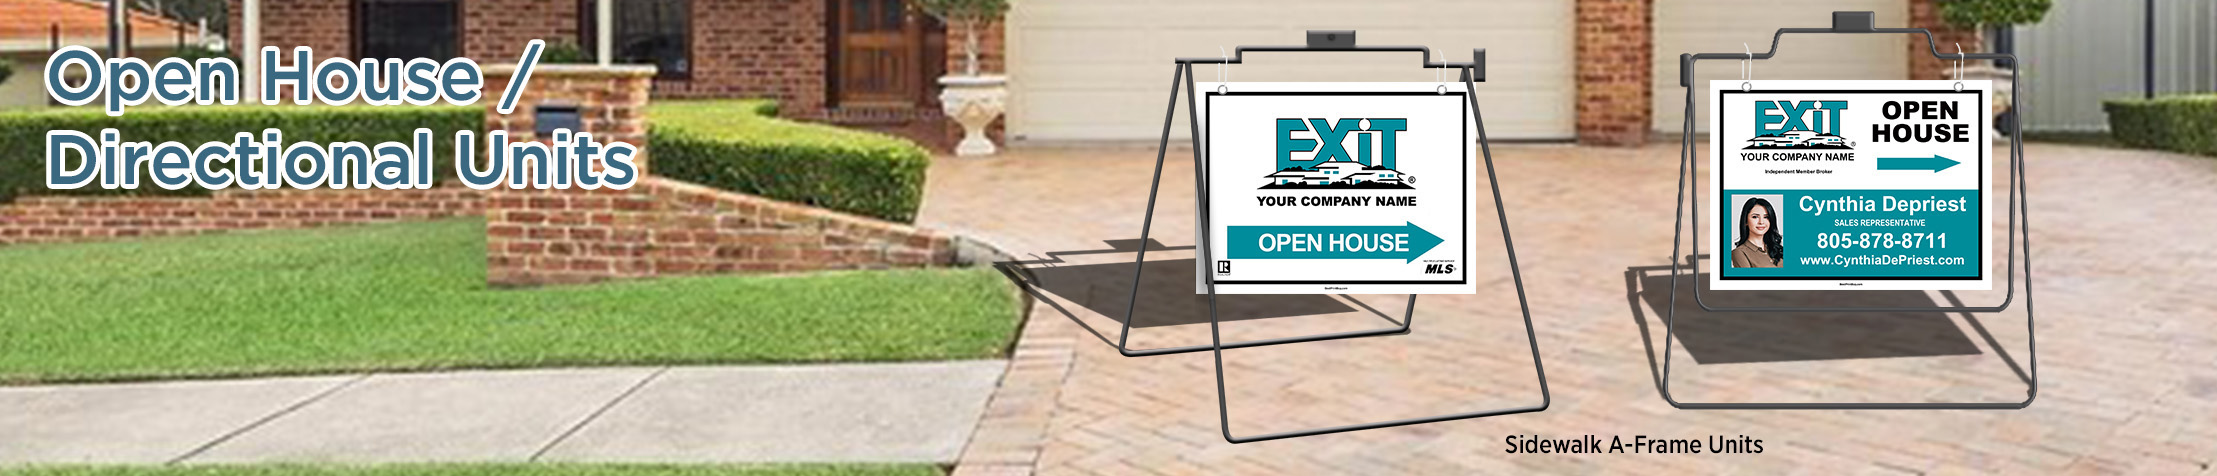 Exit Realty Open House/Directional Units - Exit Realty approved vendor real estate Sidewalk A-Frame signs | BestPrintBuy.com